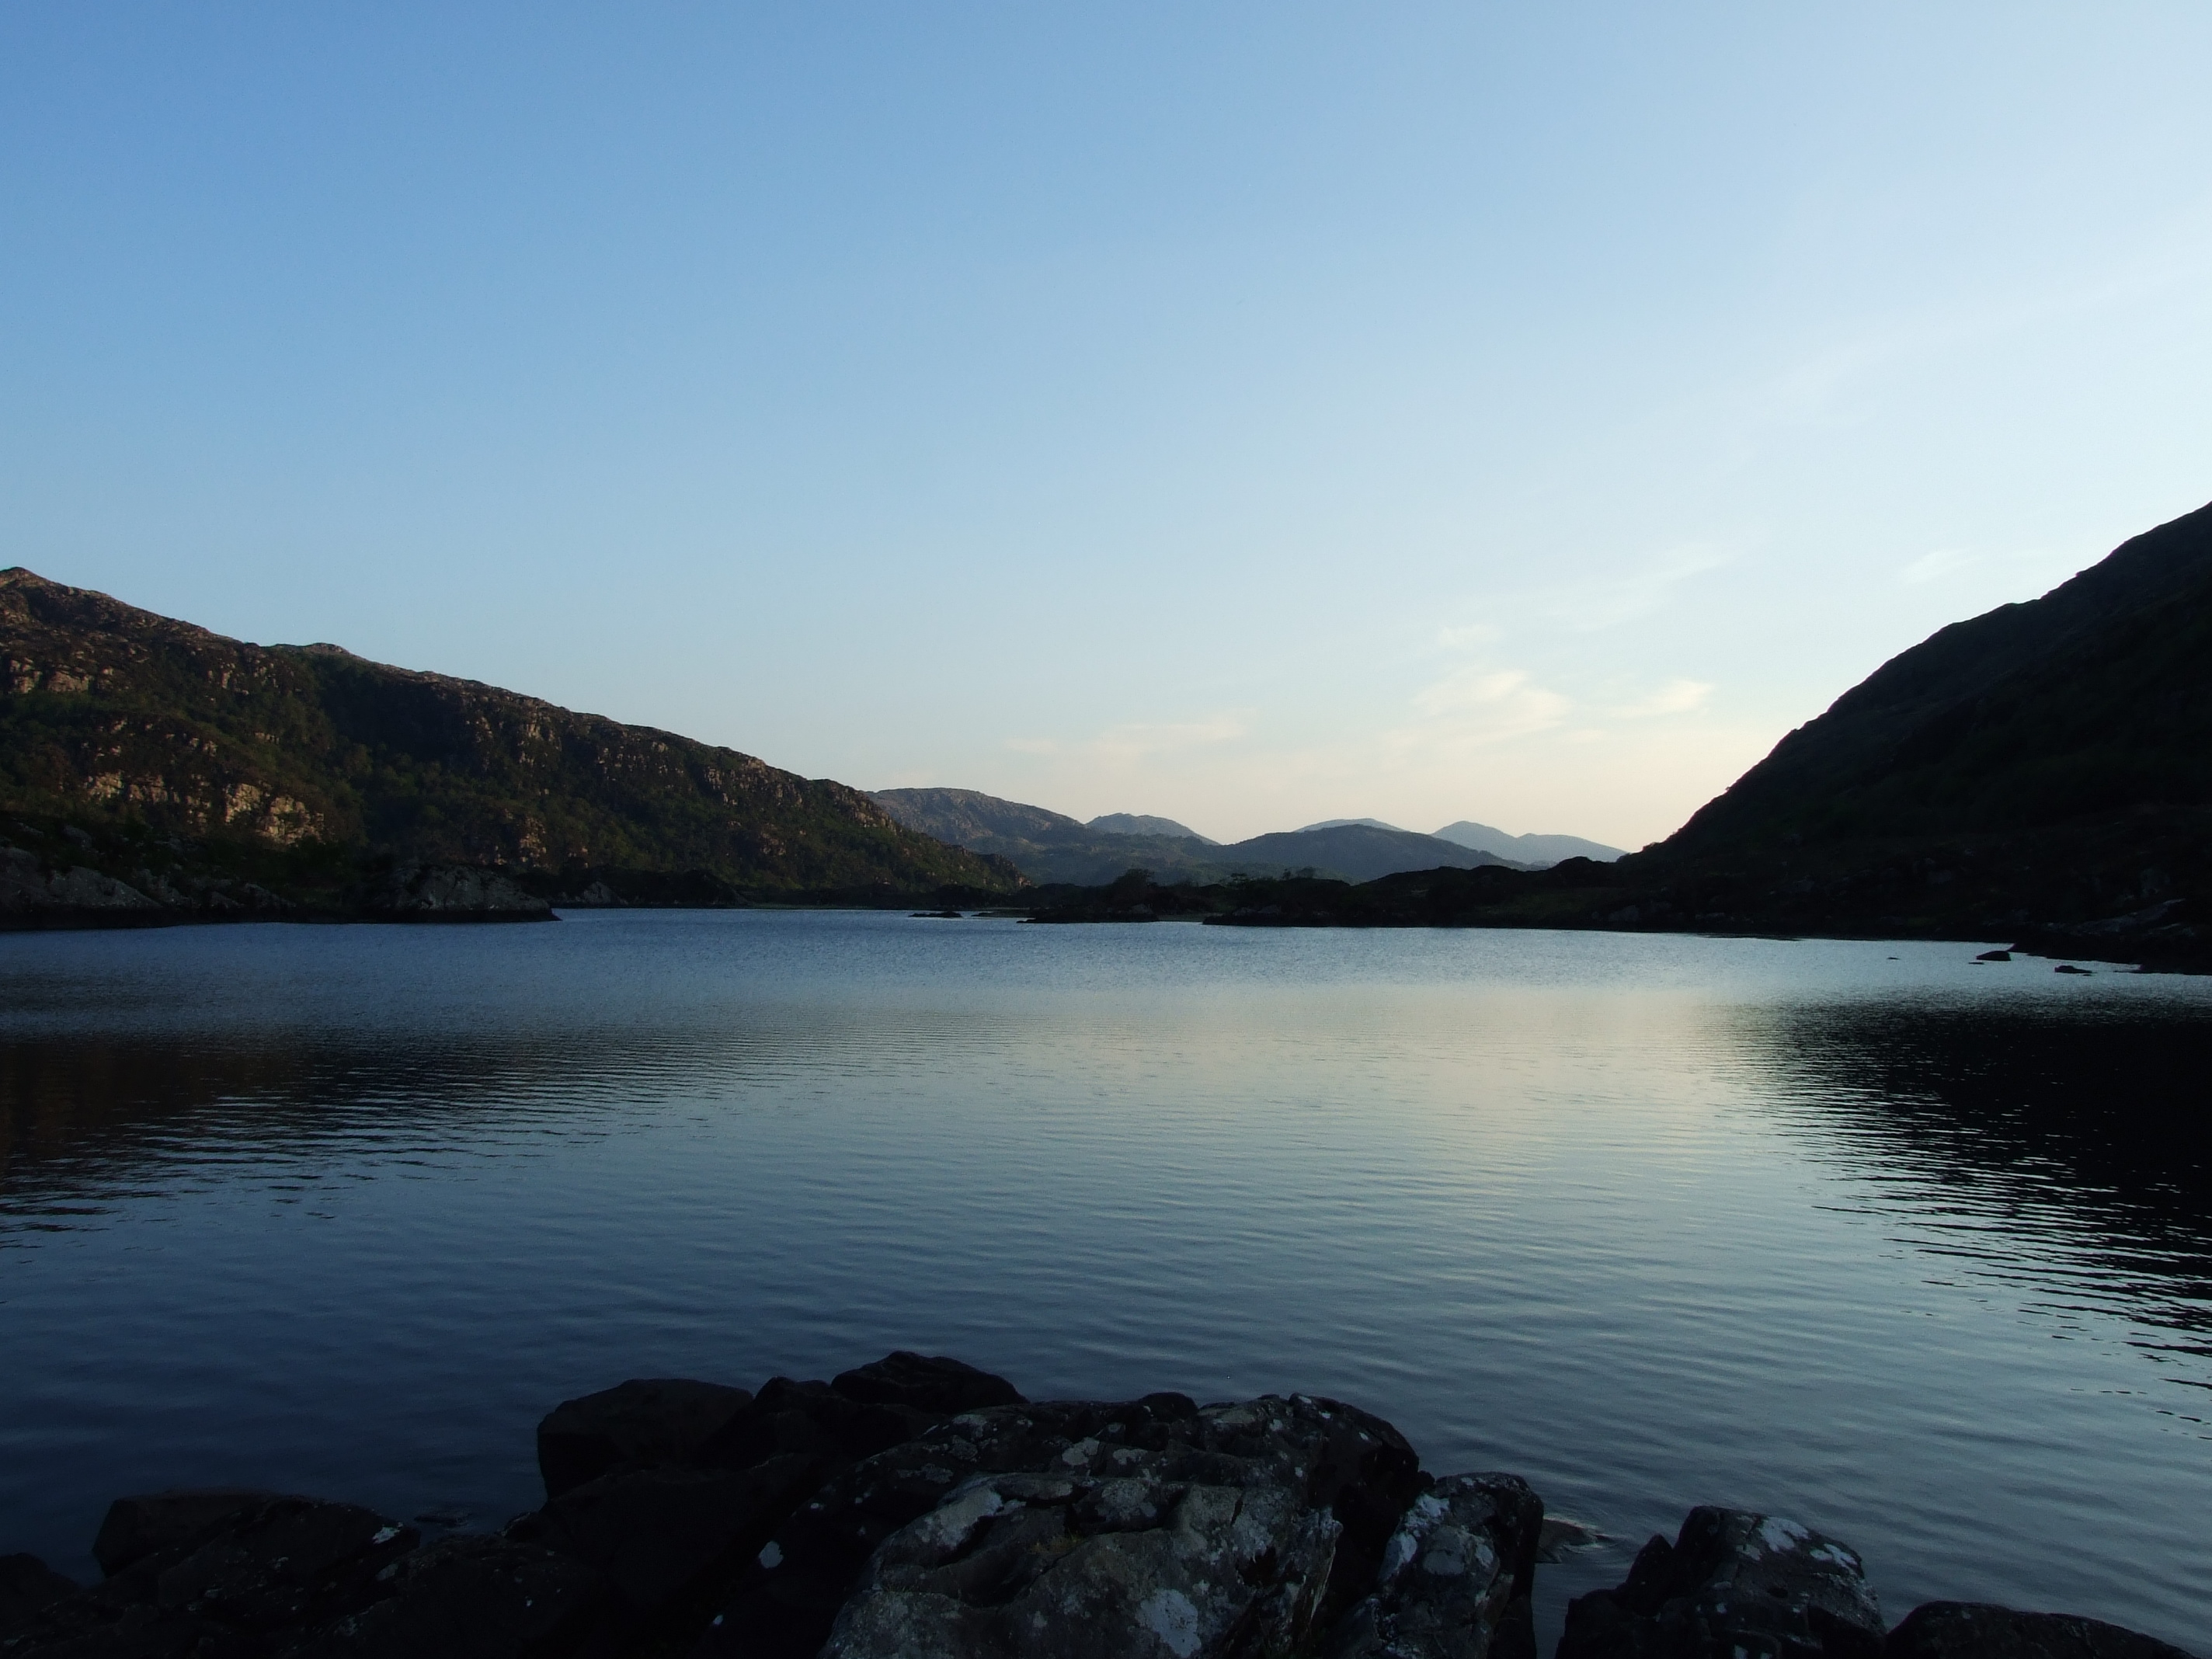 Lakes of Killarney - Lake in Ireland - Thousand Wonders